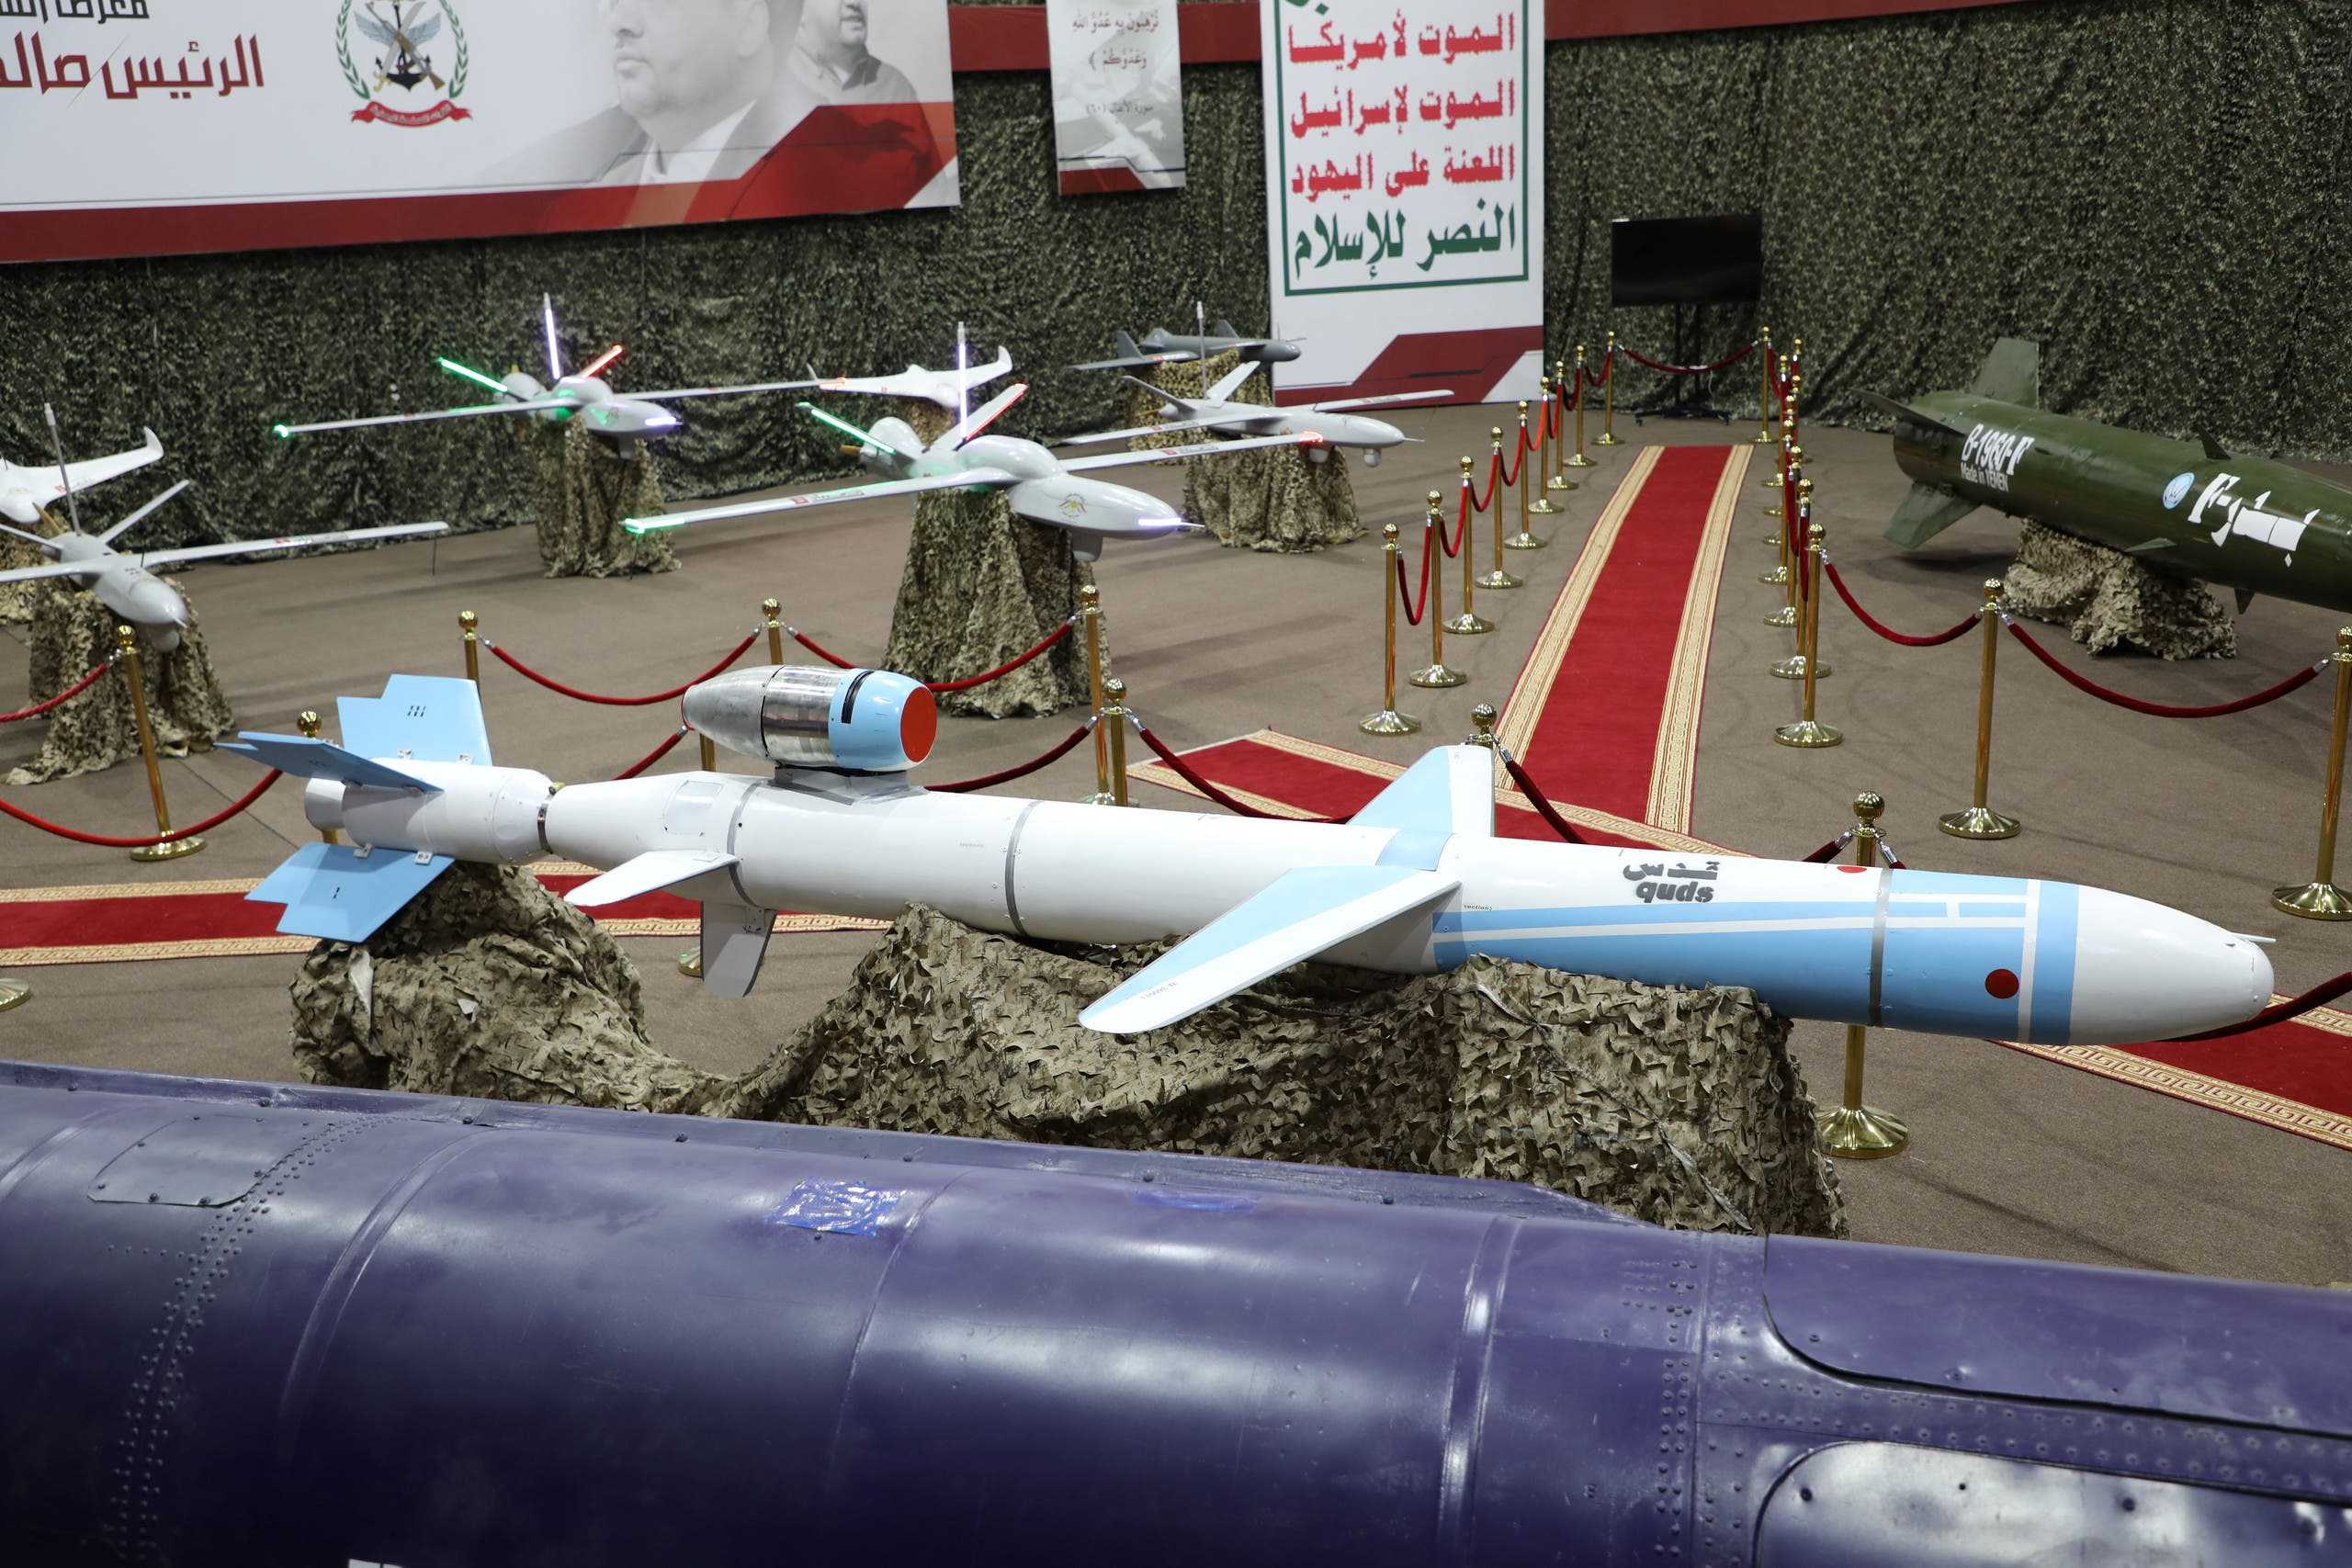 Missiles and drone aircraft are seen on display at an exhibition at an unidentified location in Yemen in this undated handout photo released by the Houthi Media Office on September 17, 2019. (Houthi Media Office/Handout via Reuters)